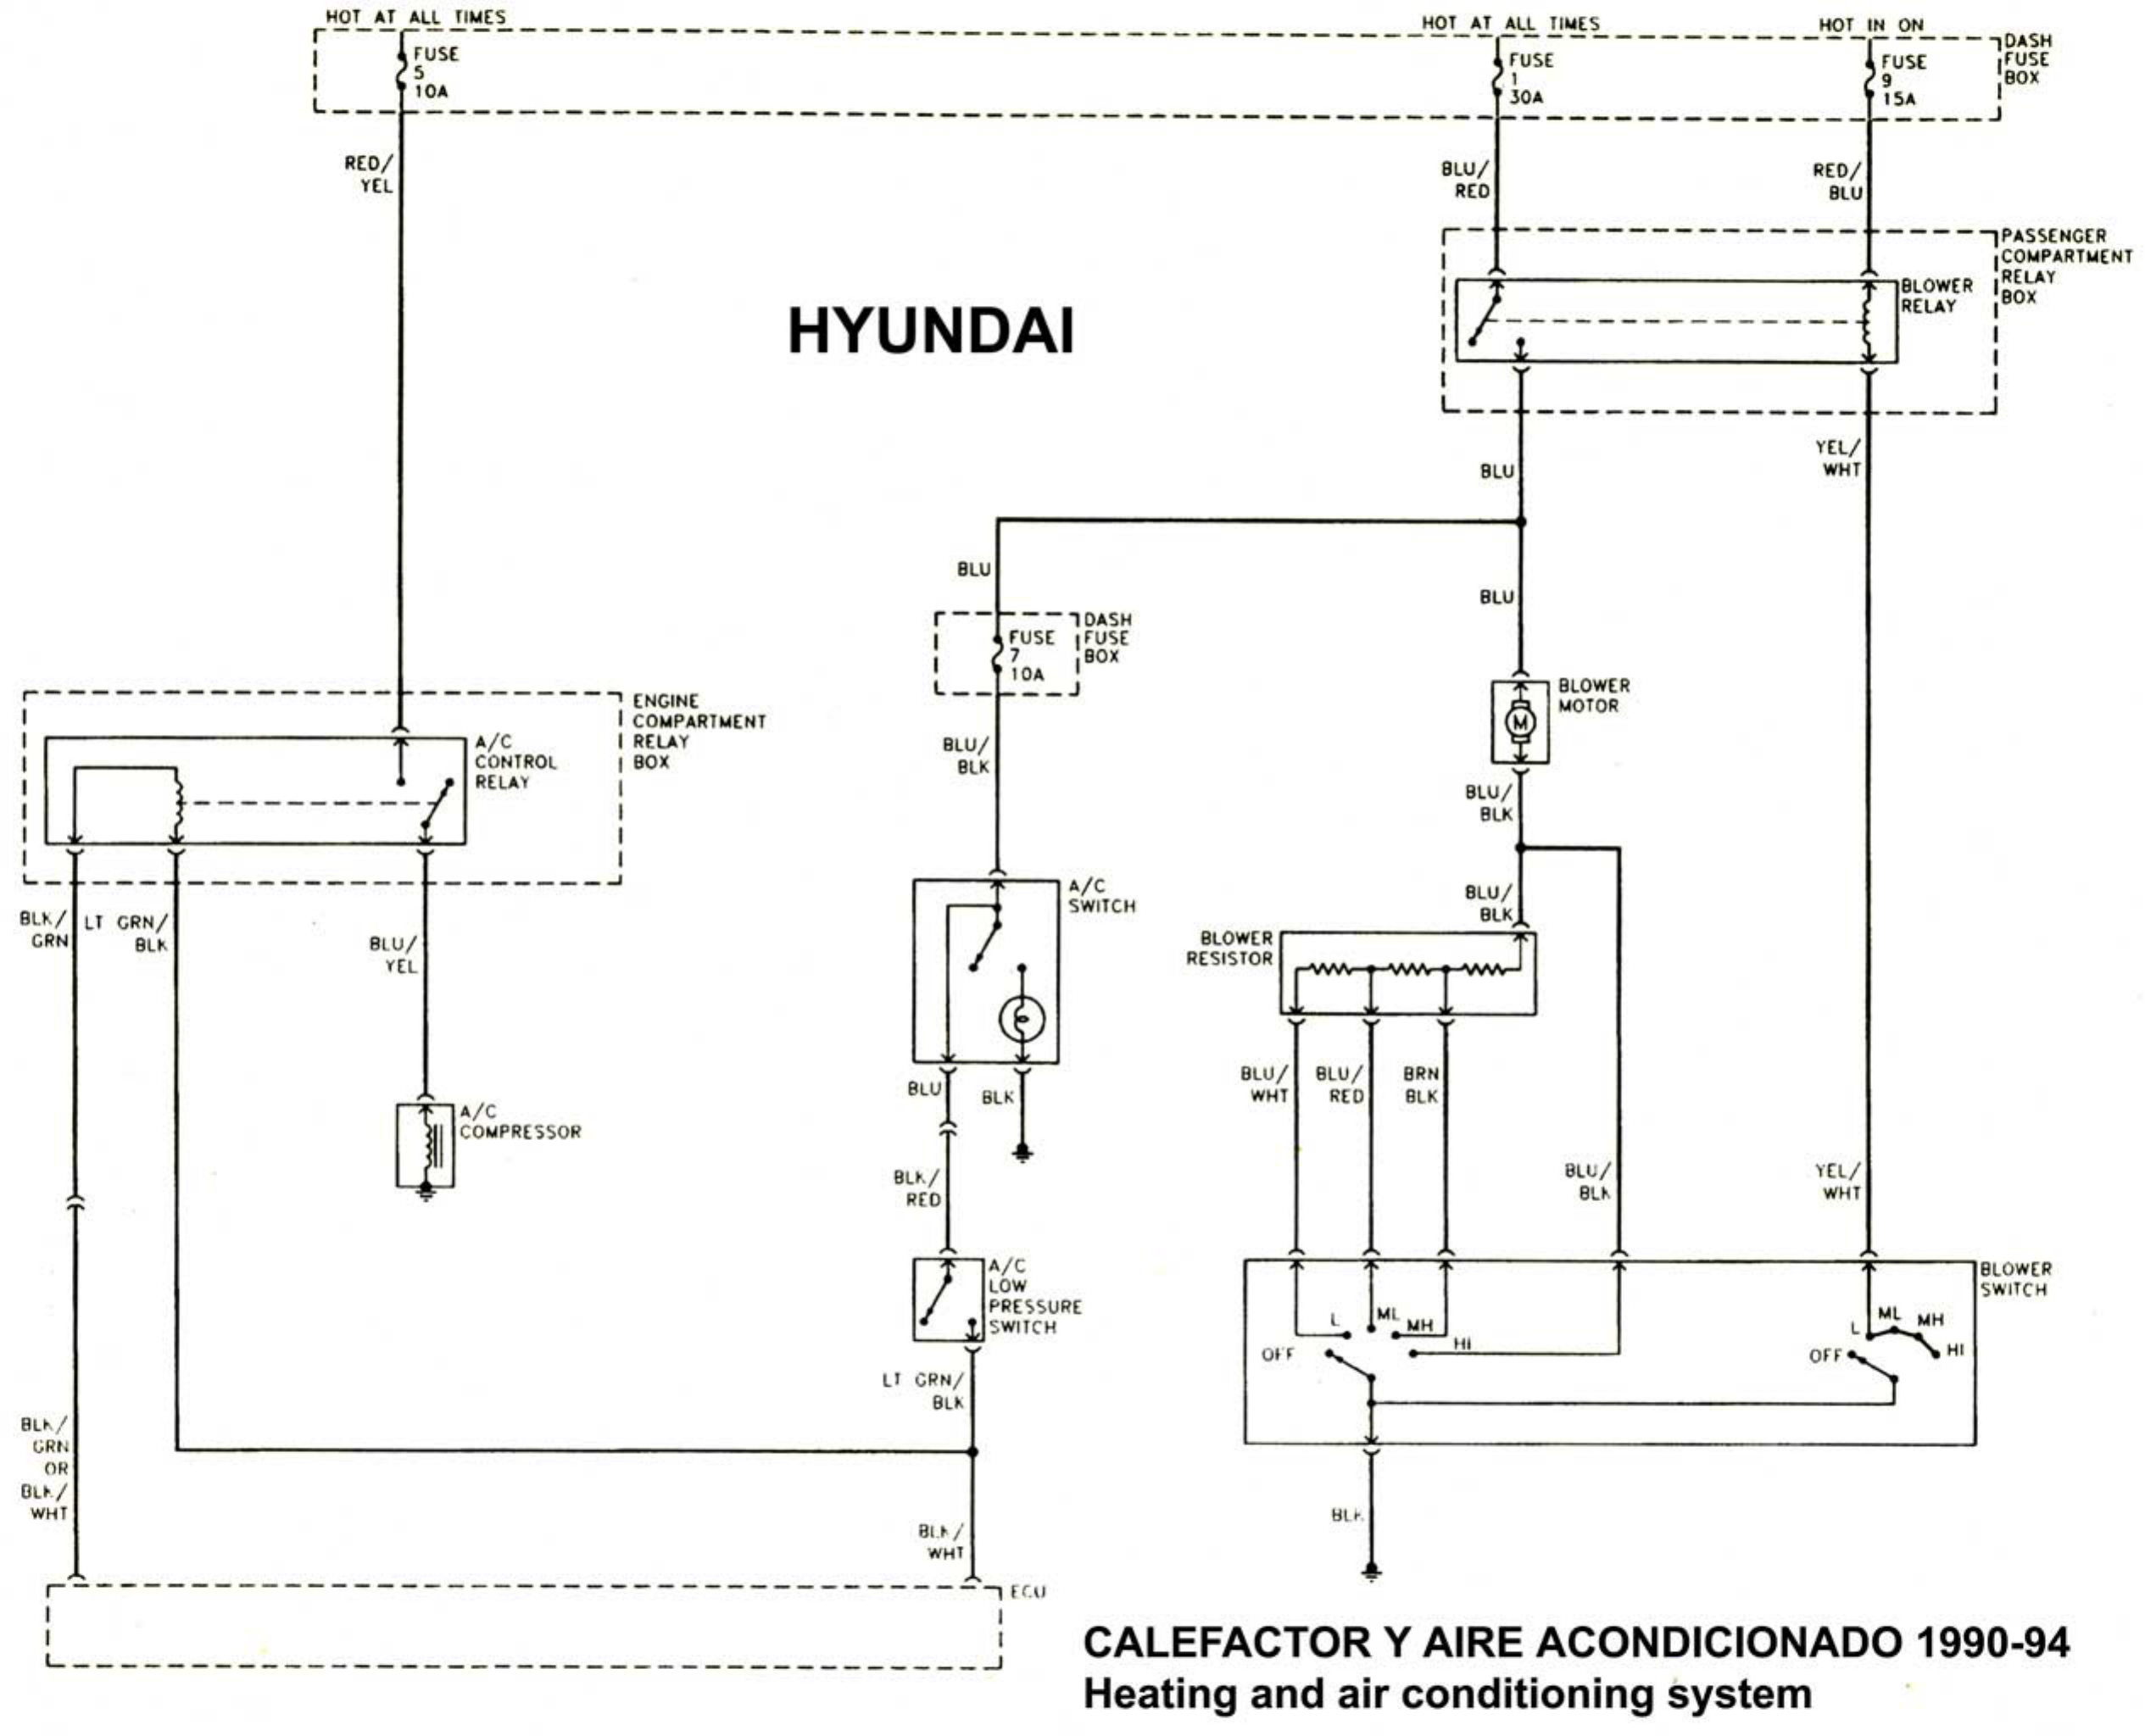 hyundai excel wiring diagram 1998 hyundai excel 1992 misc document wiring diagram spanish pdf 2006 hyundai sonata wiring diagram #15